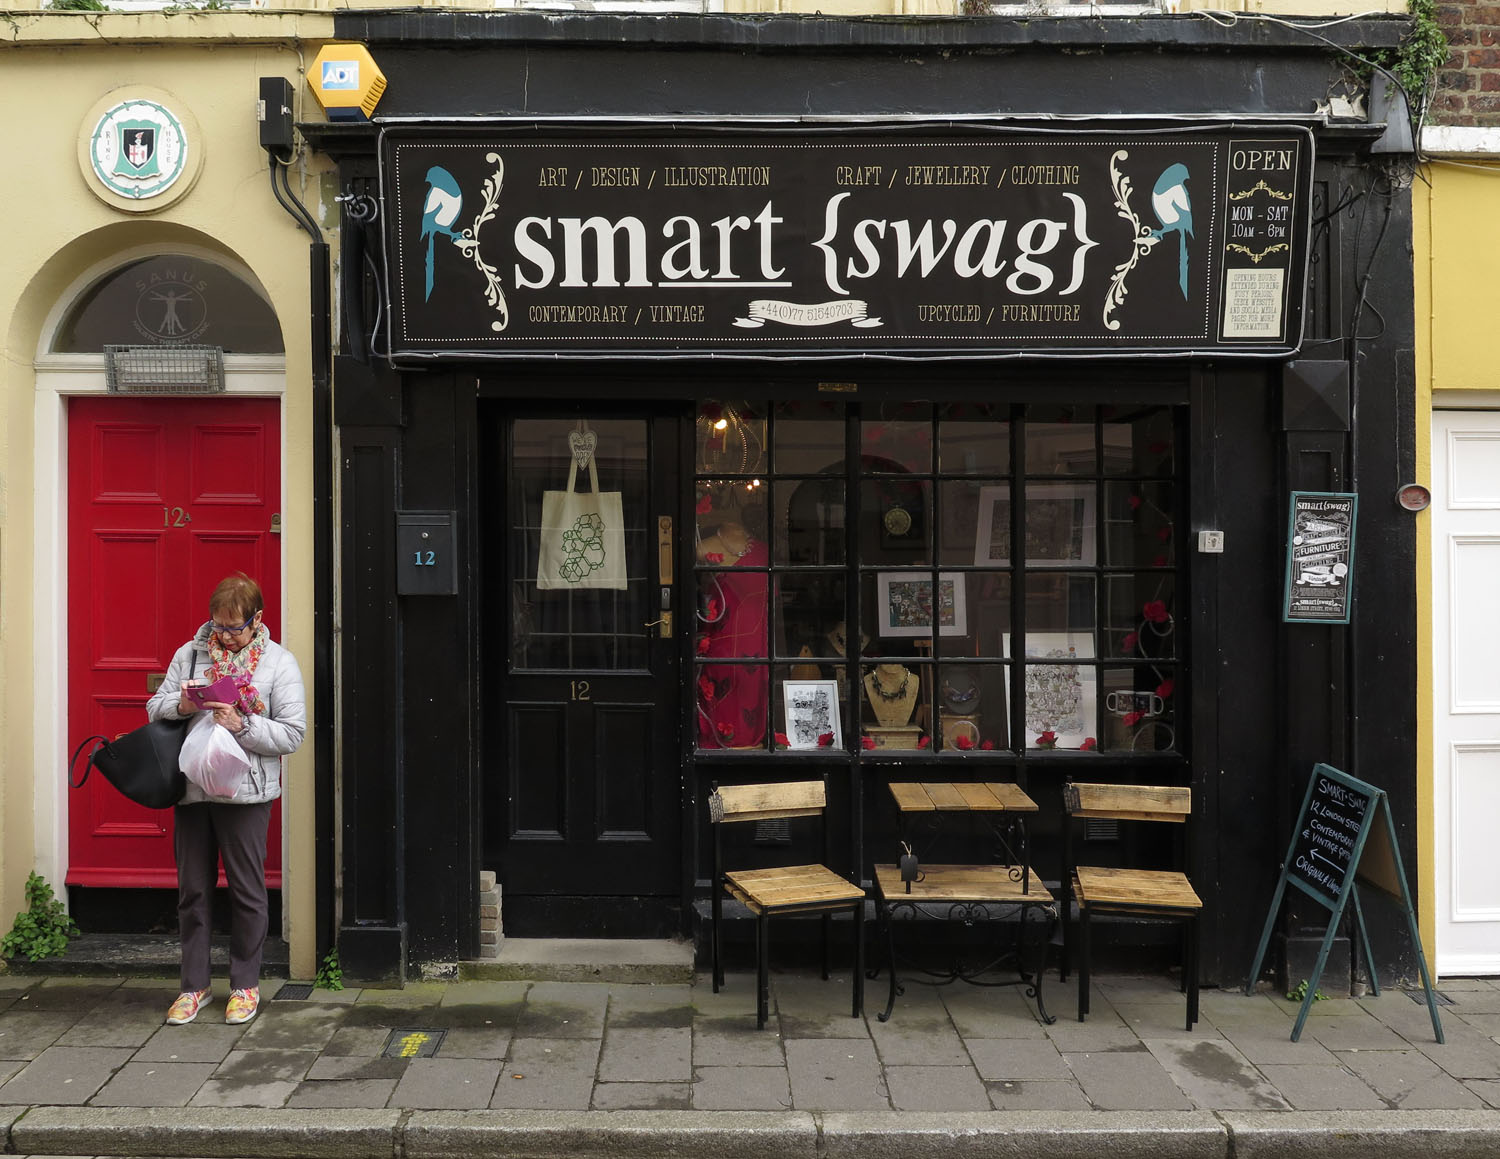 Northern-Ireland-Derry-Londonderry-Street-Scenes-Smart-Swag